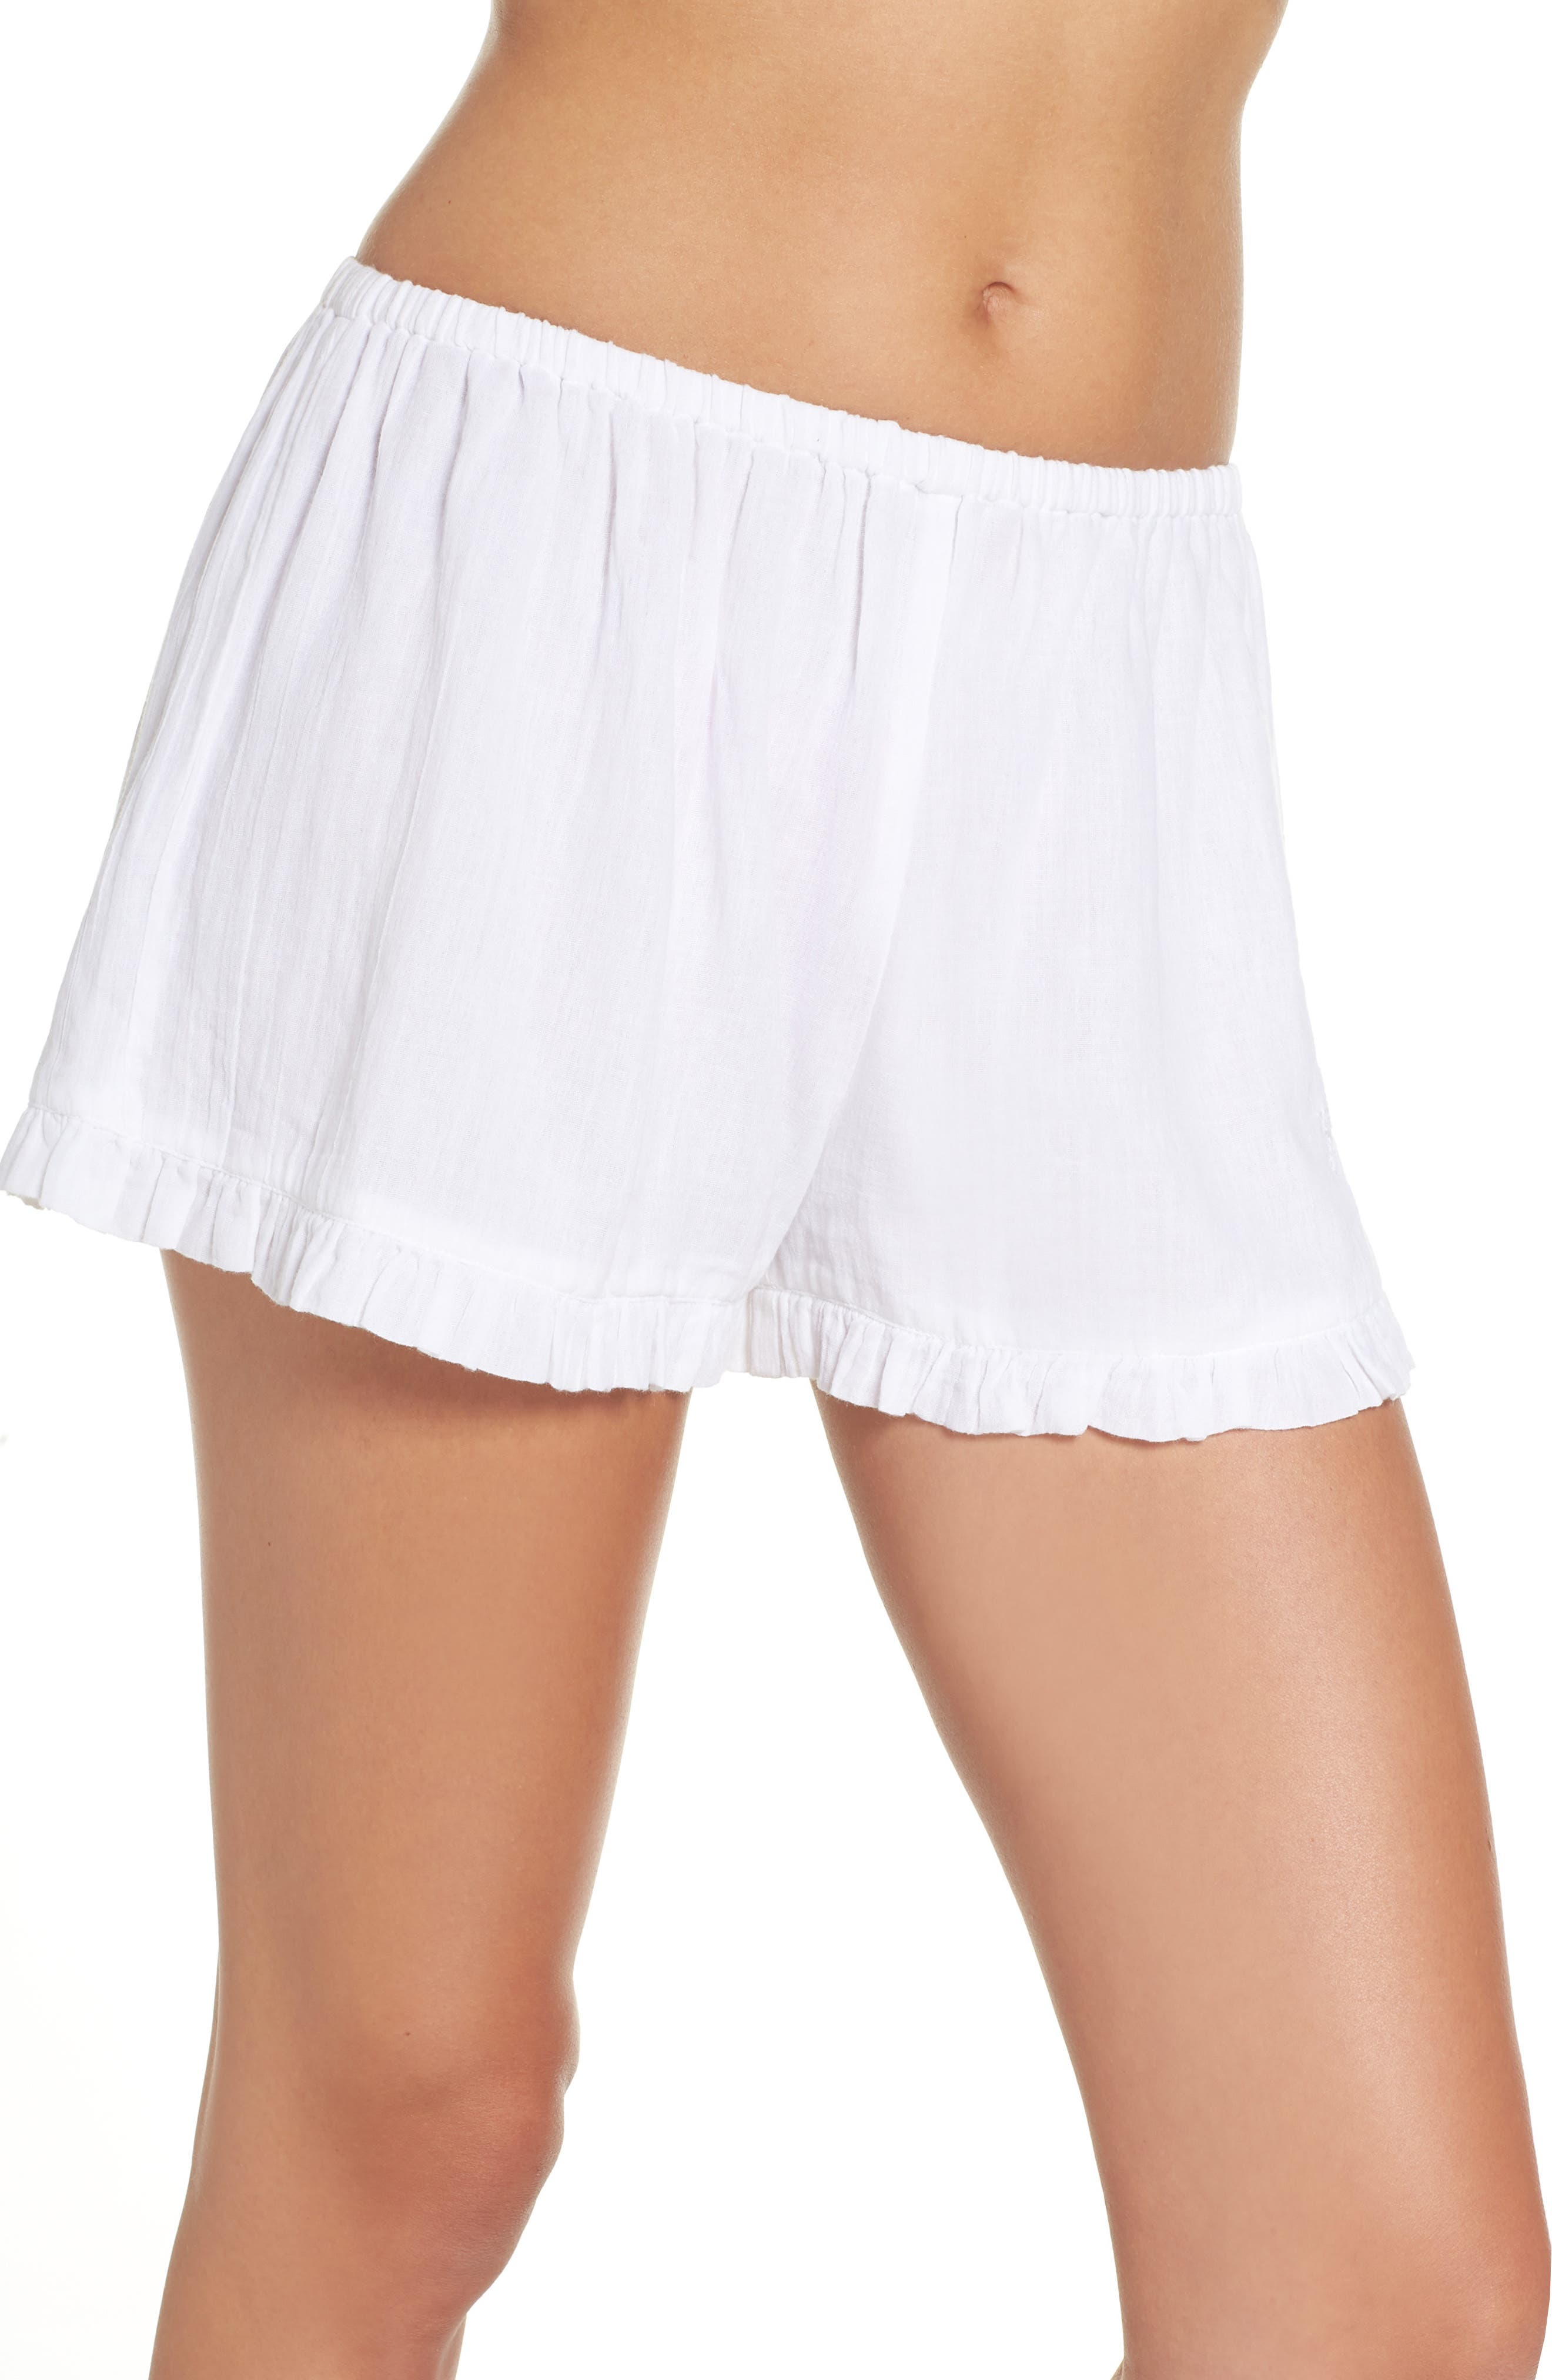 Cambria Ruffle Sleep Shorts,                         Main,                         color, White